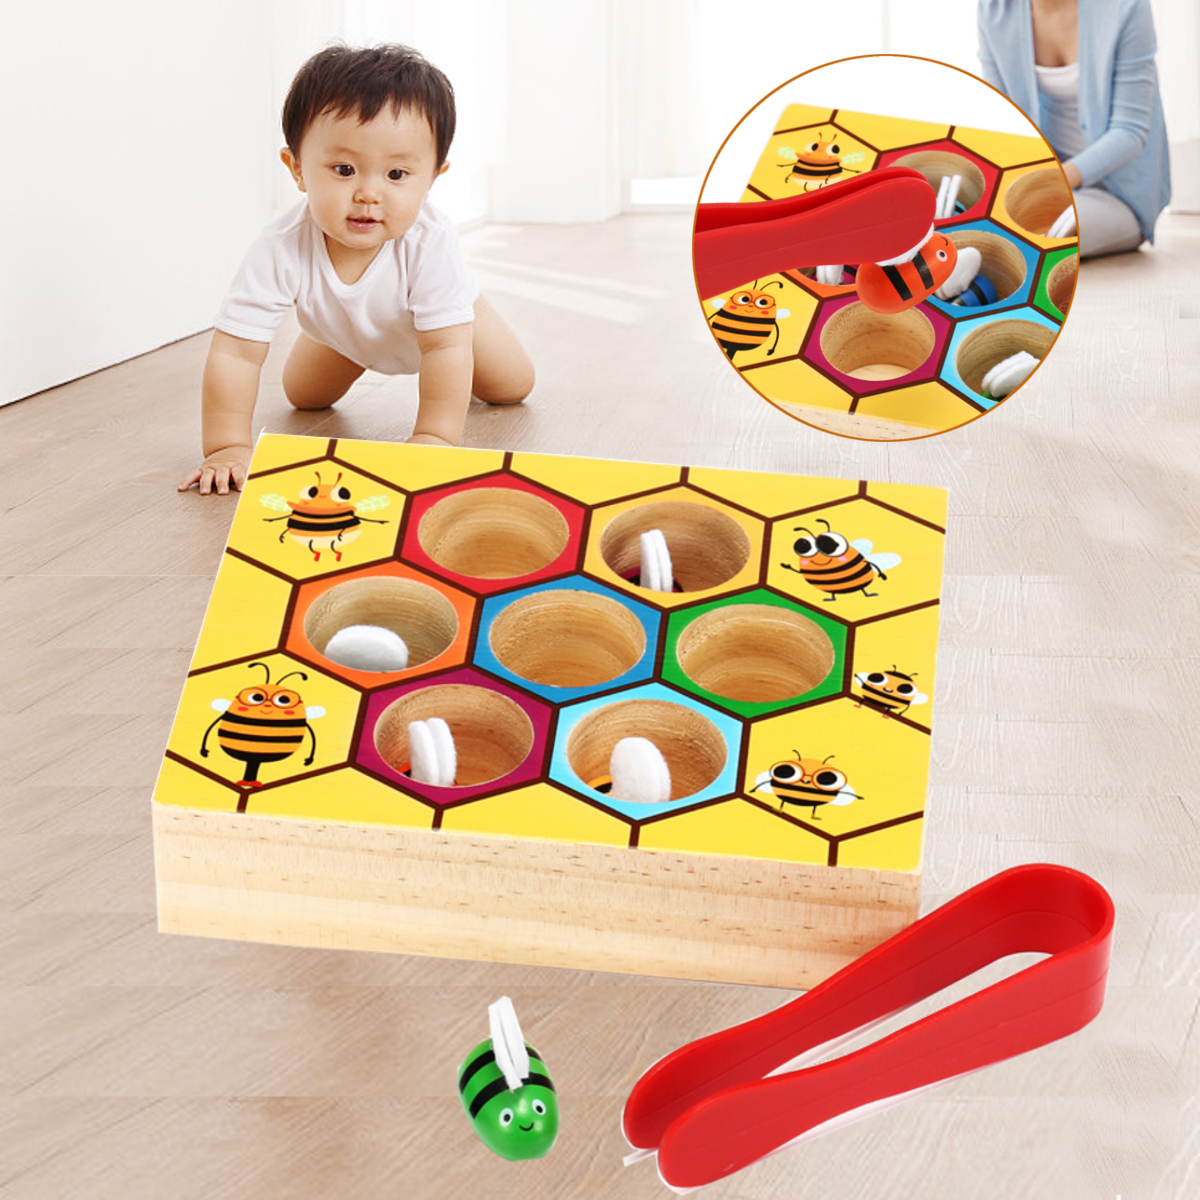 Hive Games Montessori Wooden Toys Baby Bees Clamp Picking Memory Training Matching Pair Math Early Education Interactive Toy